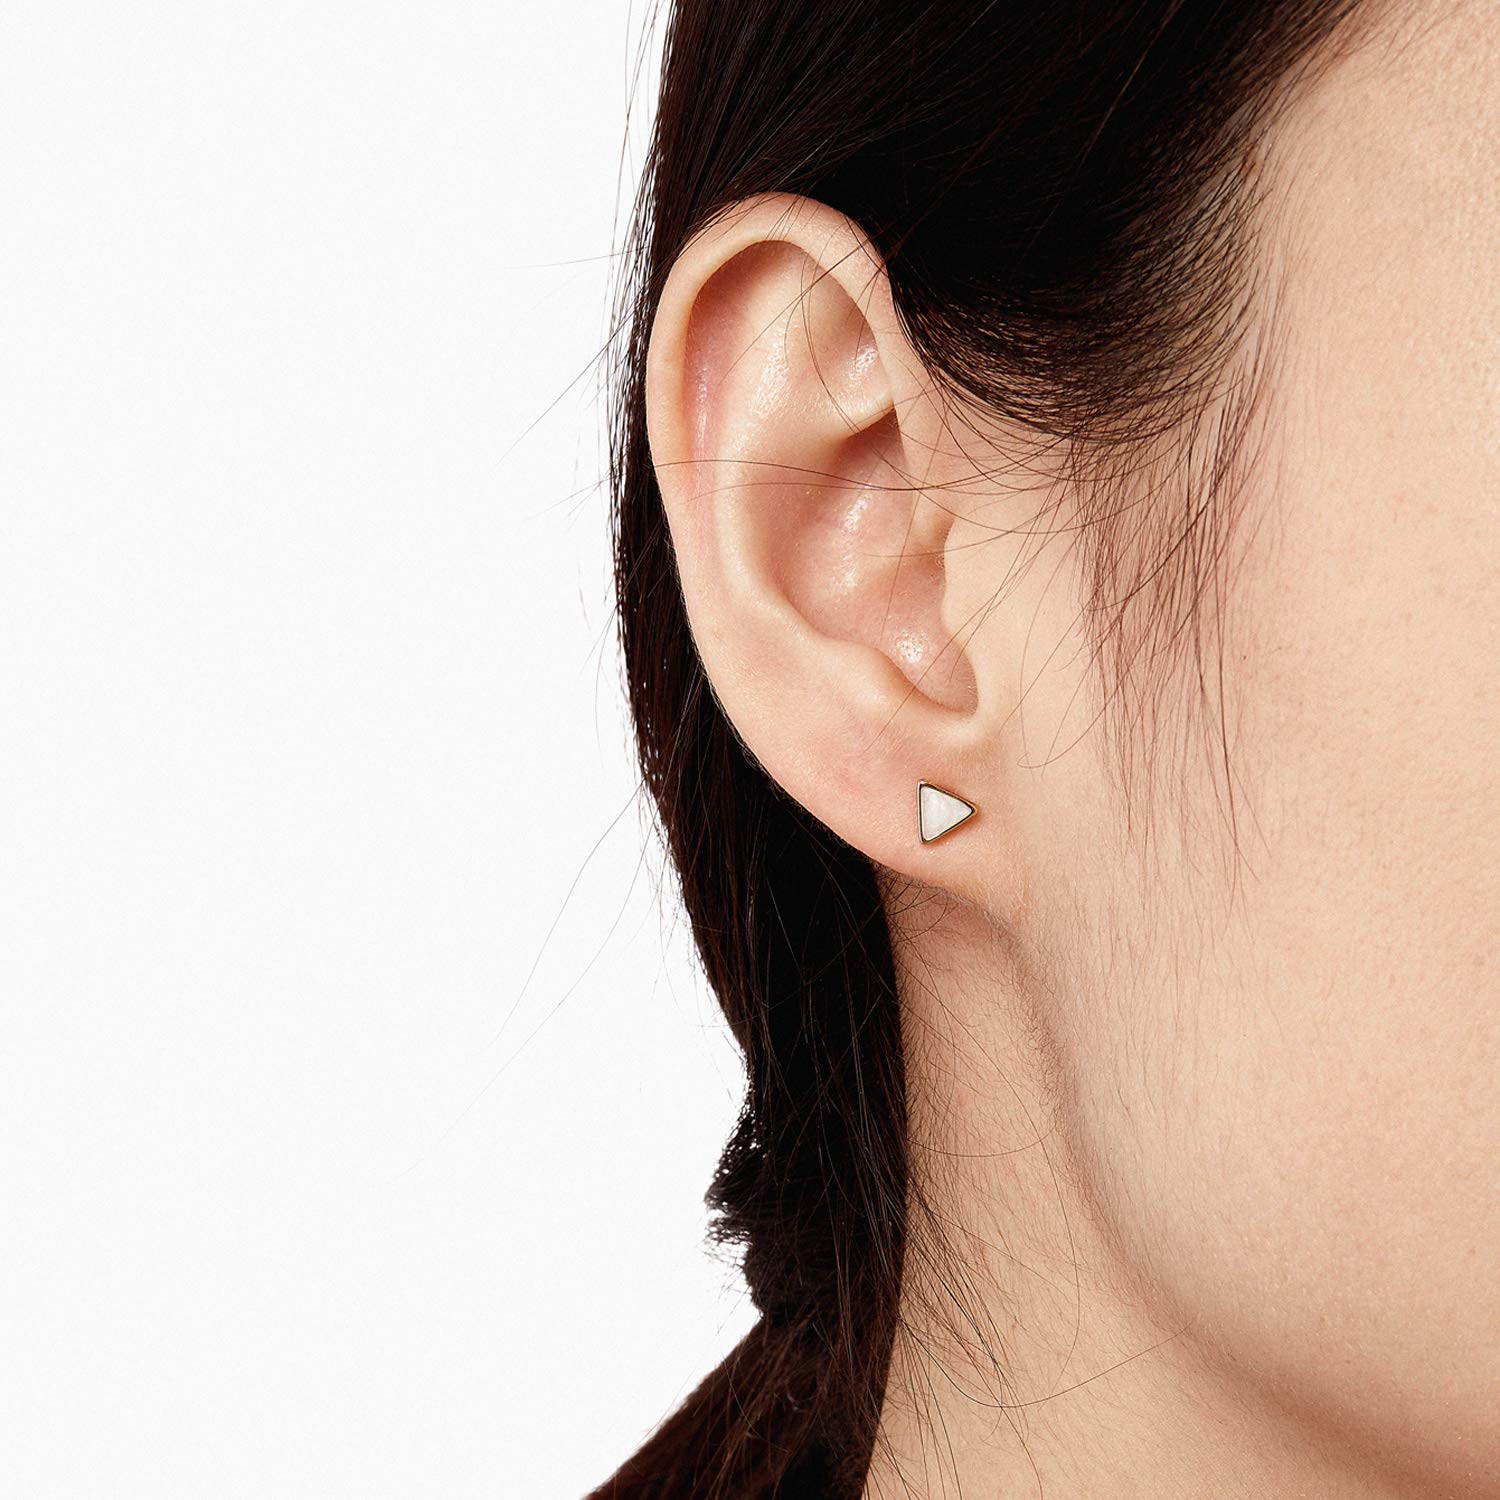 Ladies Fashion Triangular and Round Earrings AJIDOU Gold Plated Studs Earring Simple Geometric Earrings for Women